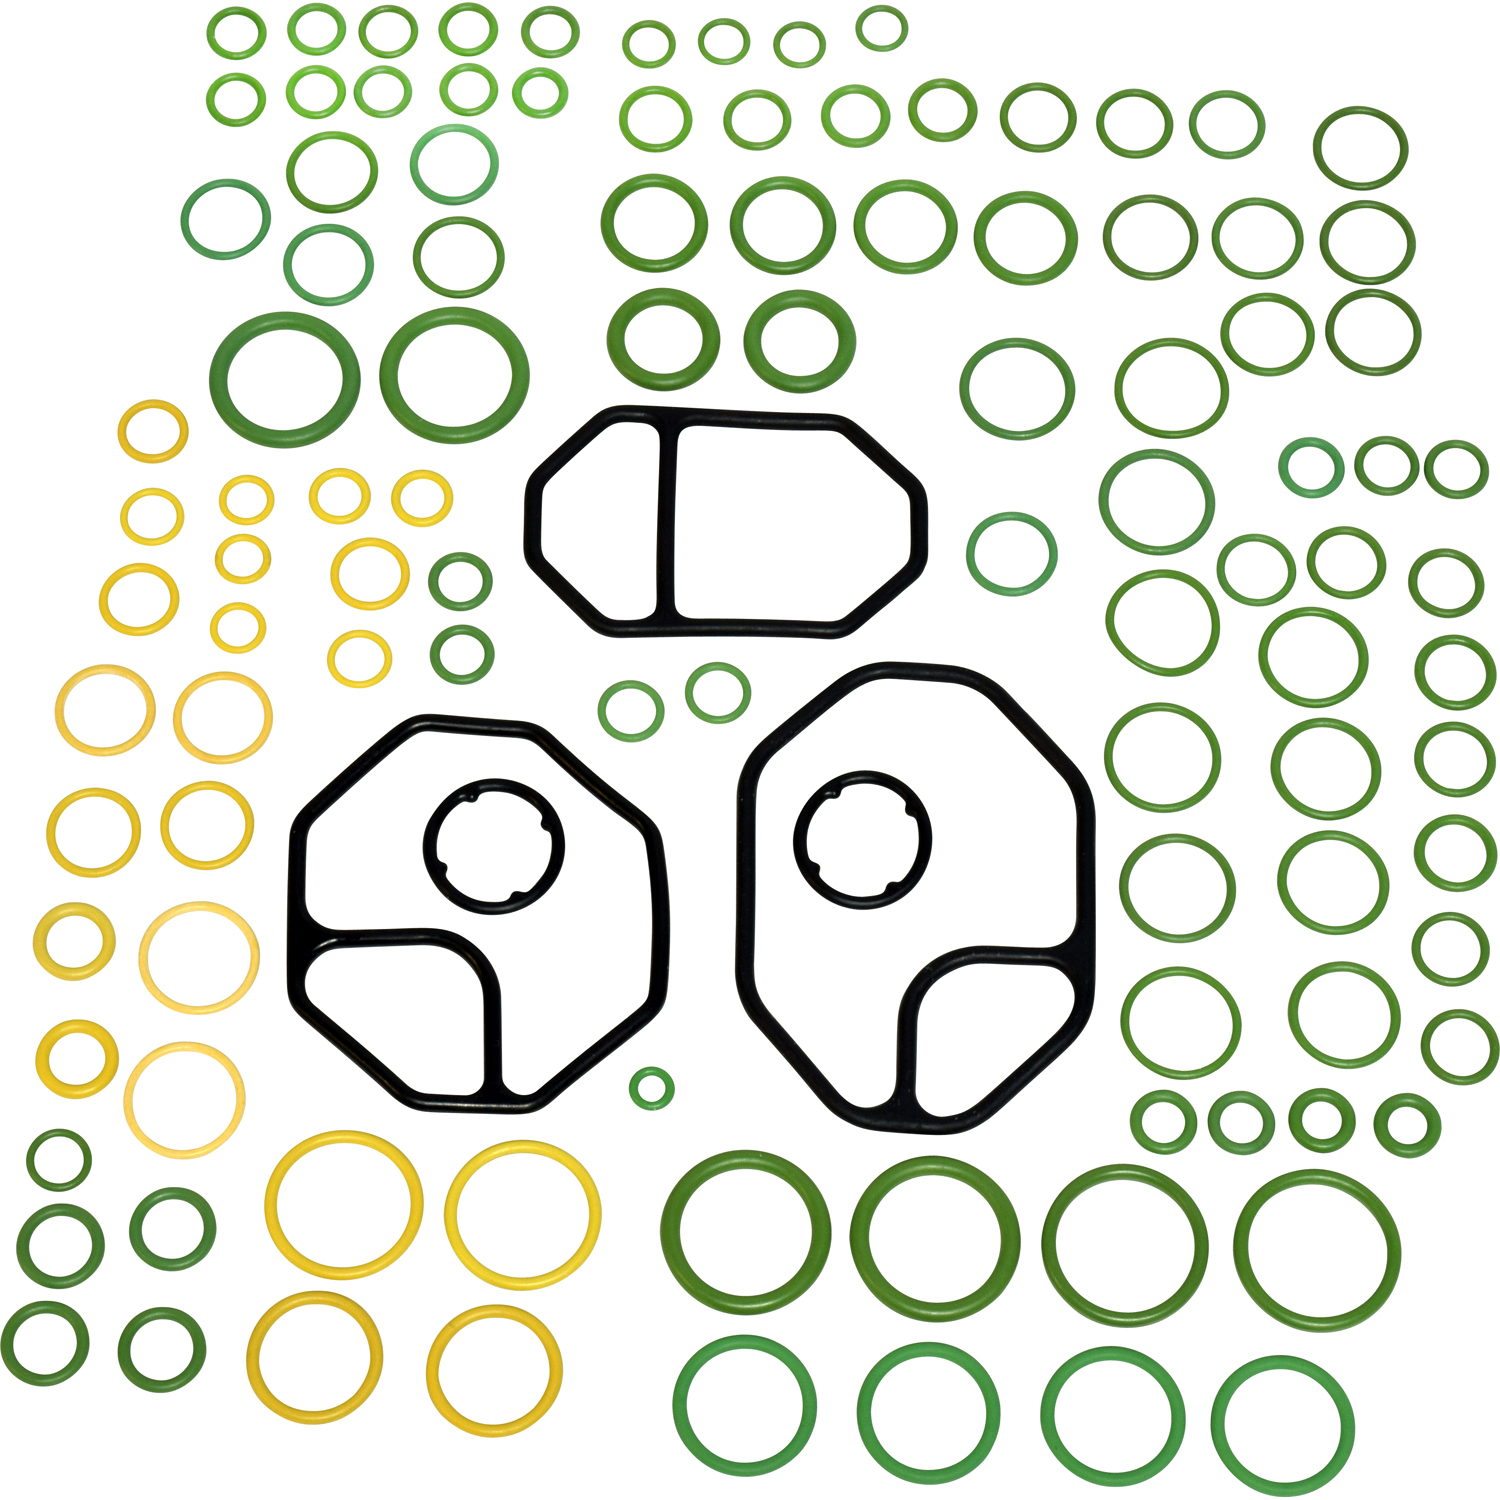 Oring Seal and Gasket Kit European Import 1990-2007 Complete System Kit